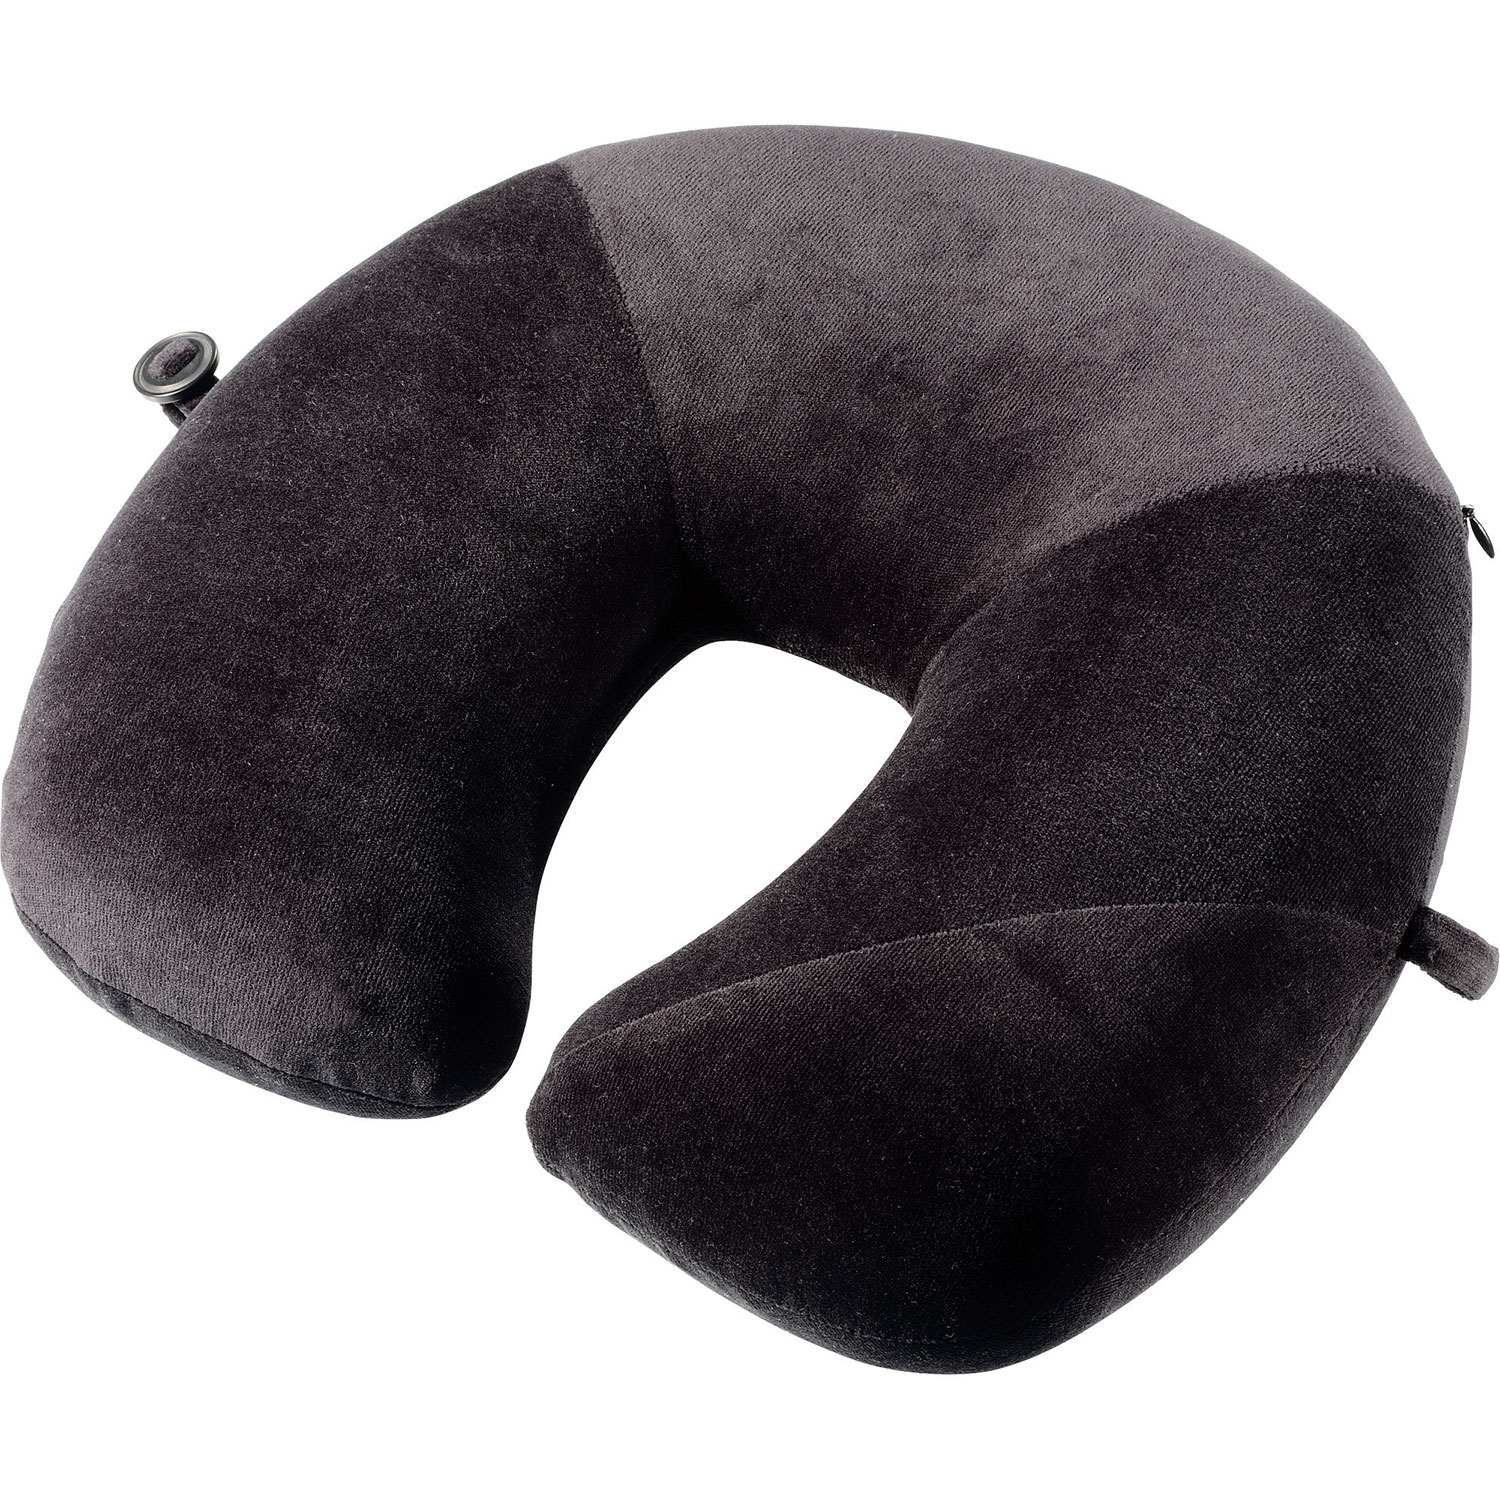 Image of: Memory Foam Neck Pillow Designs